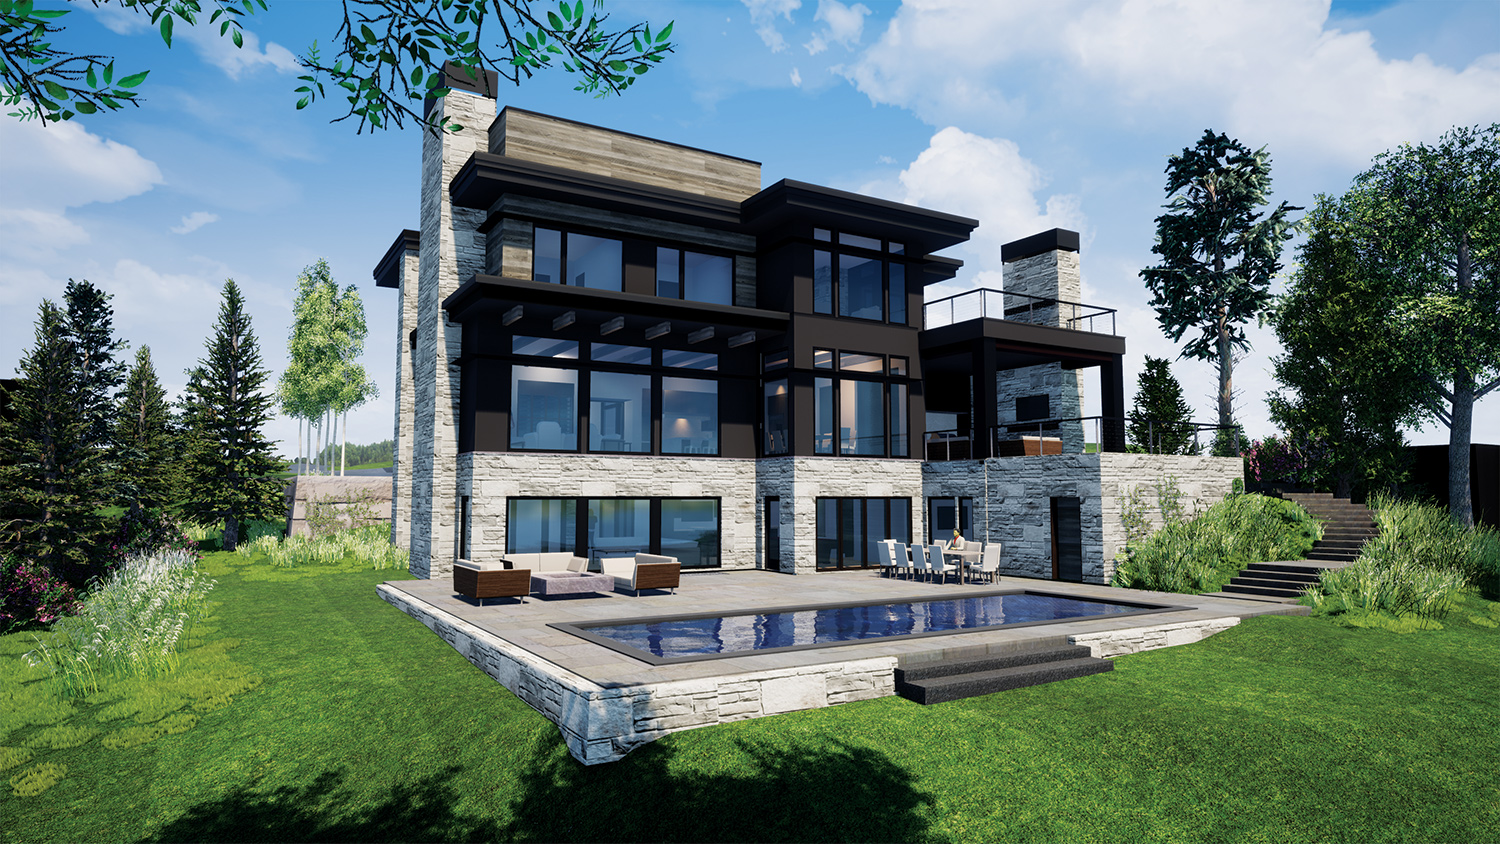 Rendering of a home by Stonewood LLC